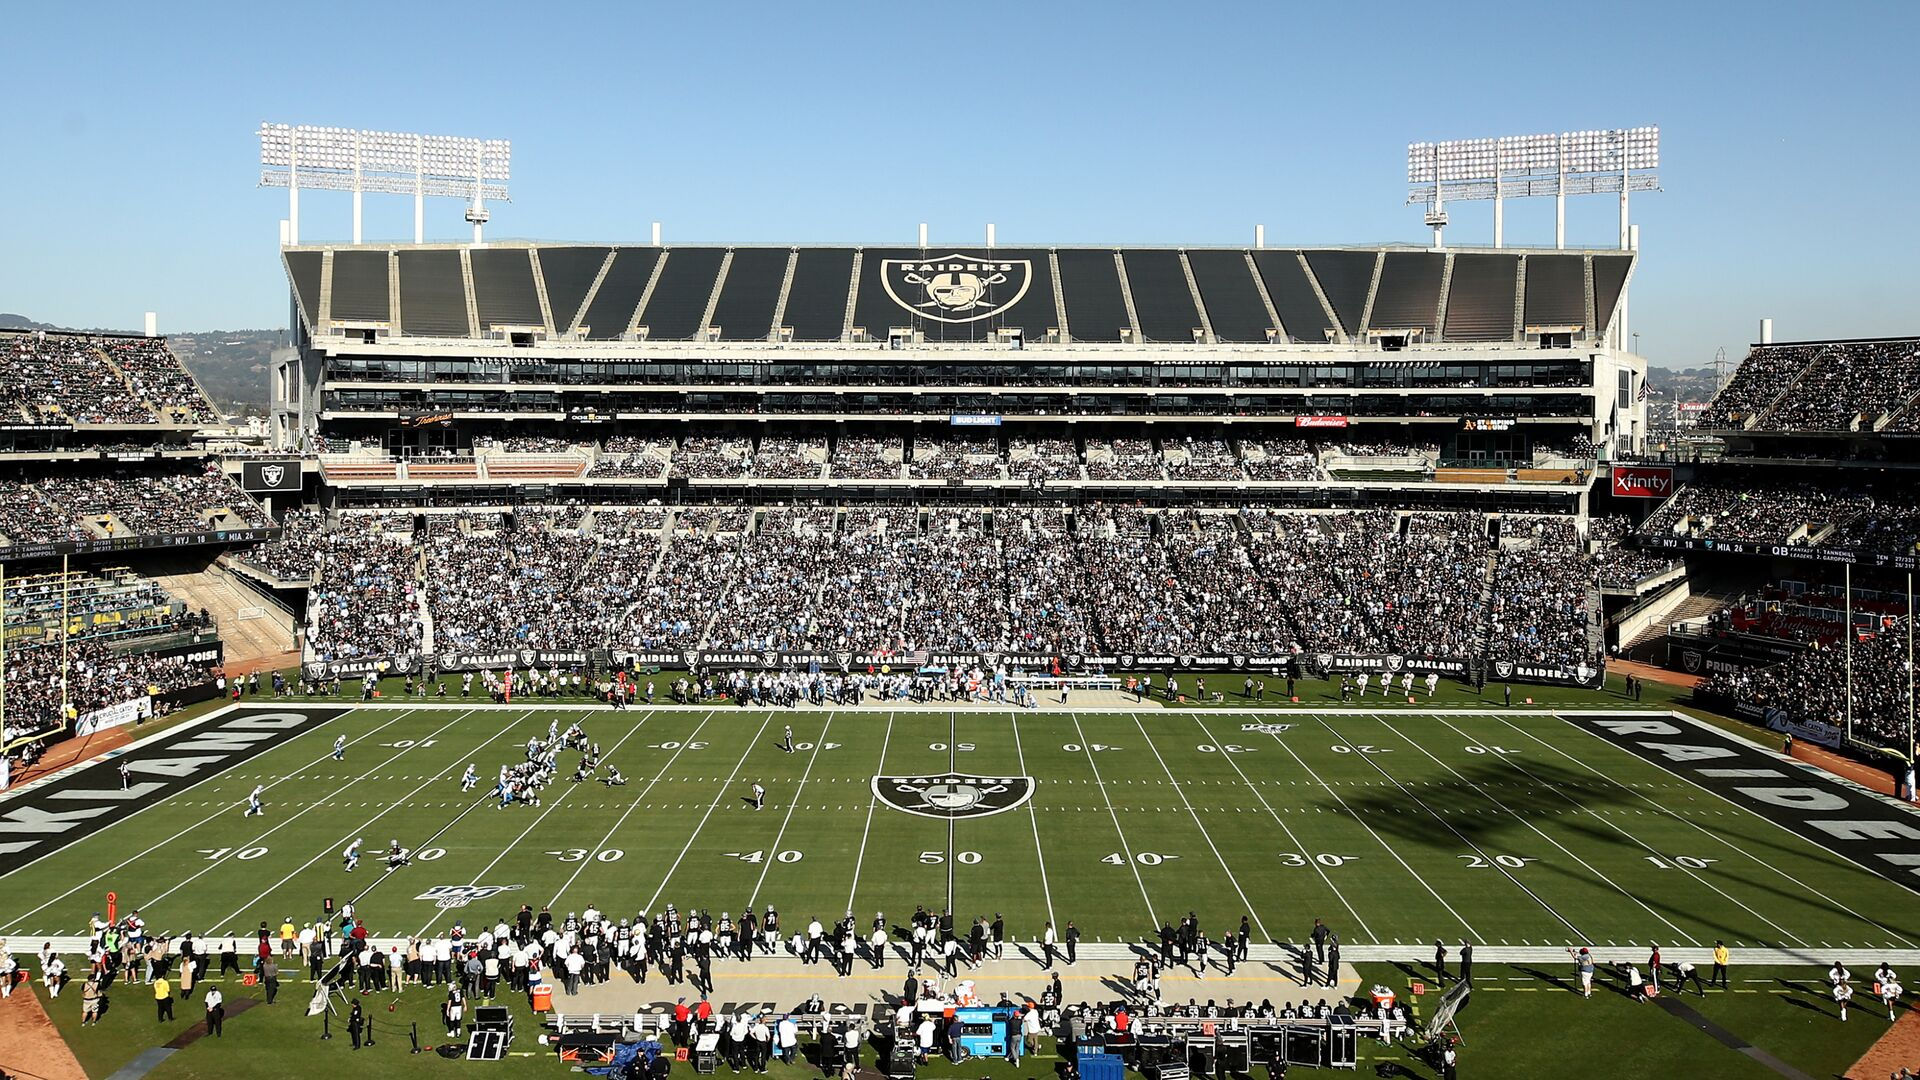 King's Kourt: Loss to Chiefs leads to an open letter to the Raiders